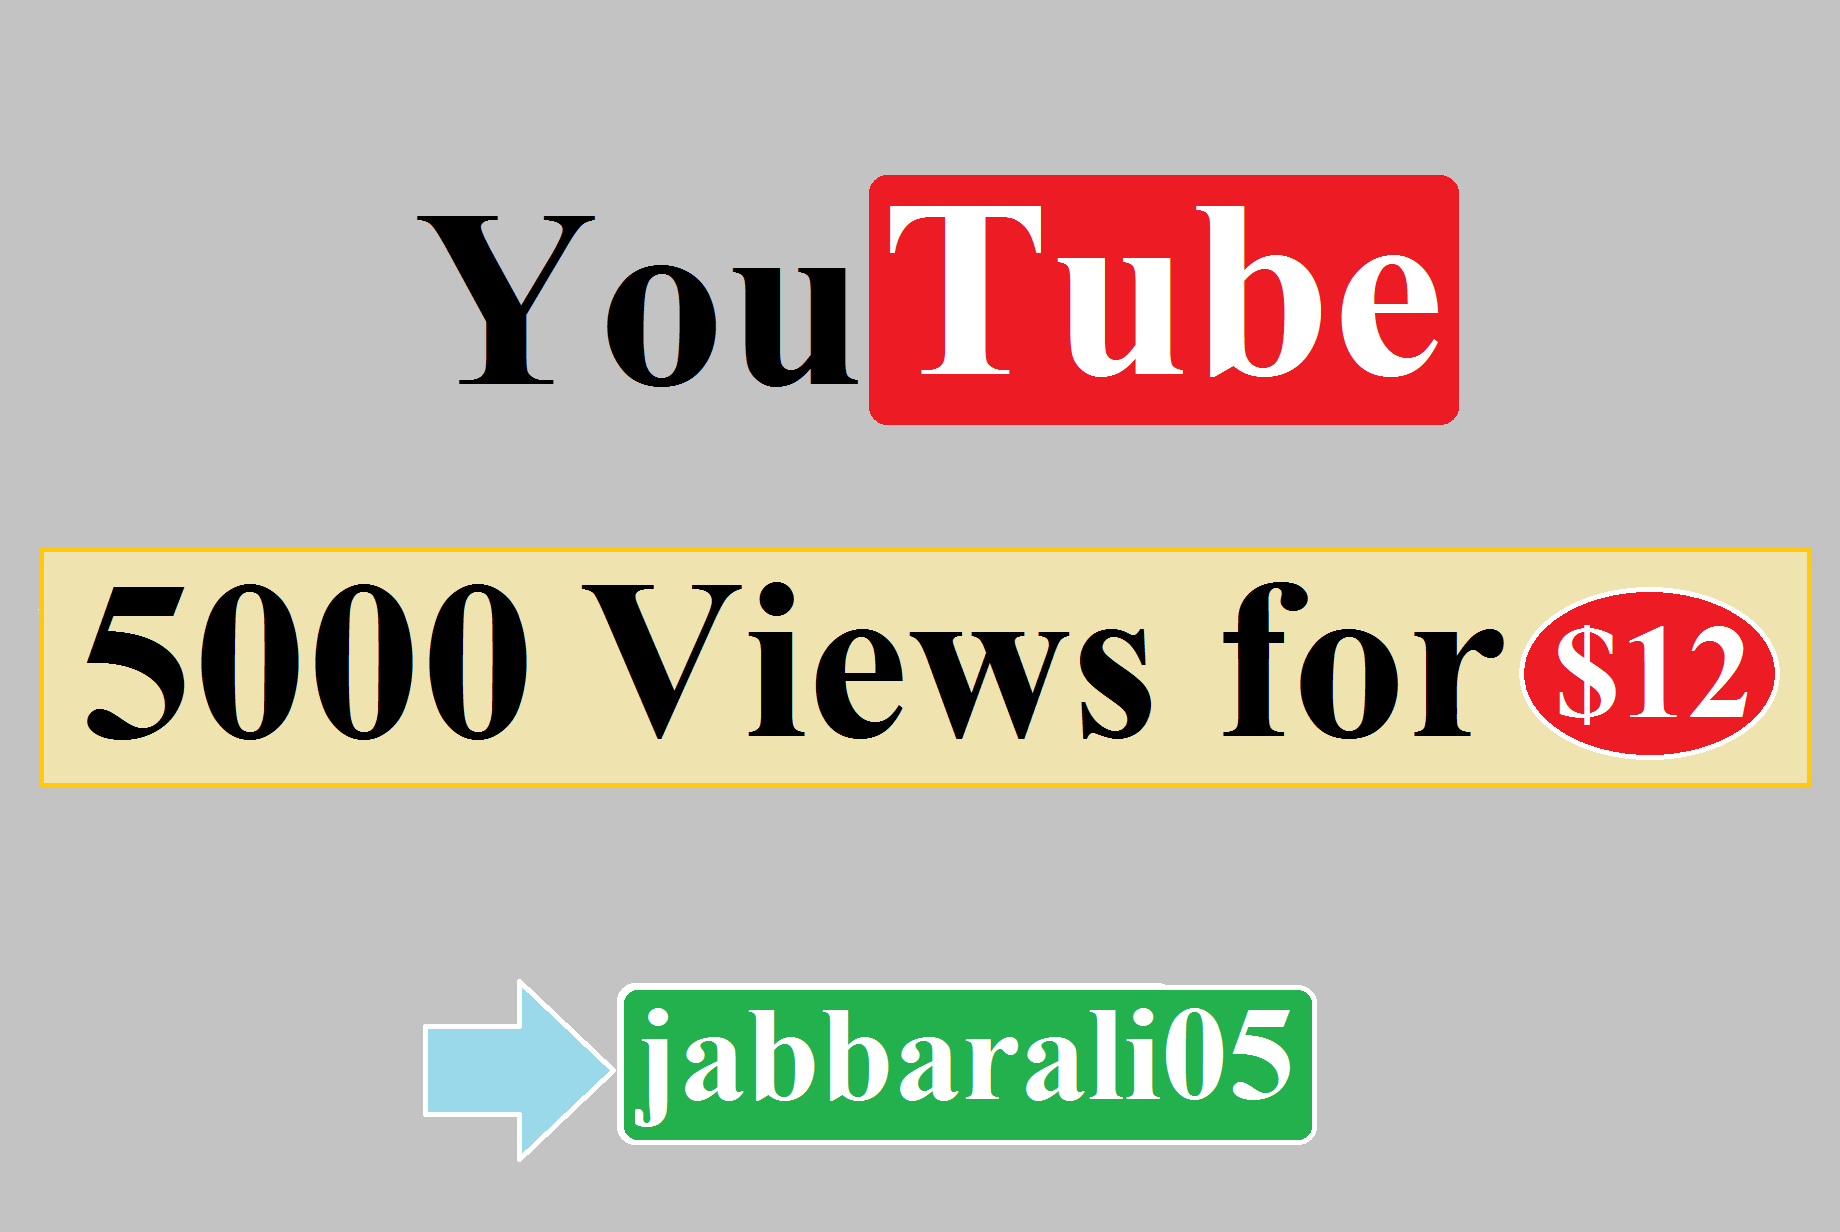 GET YOUTUBE VlEWS FOR YOUR VIDEO PROMOTION